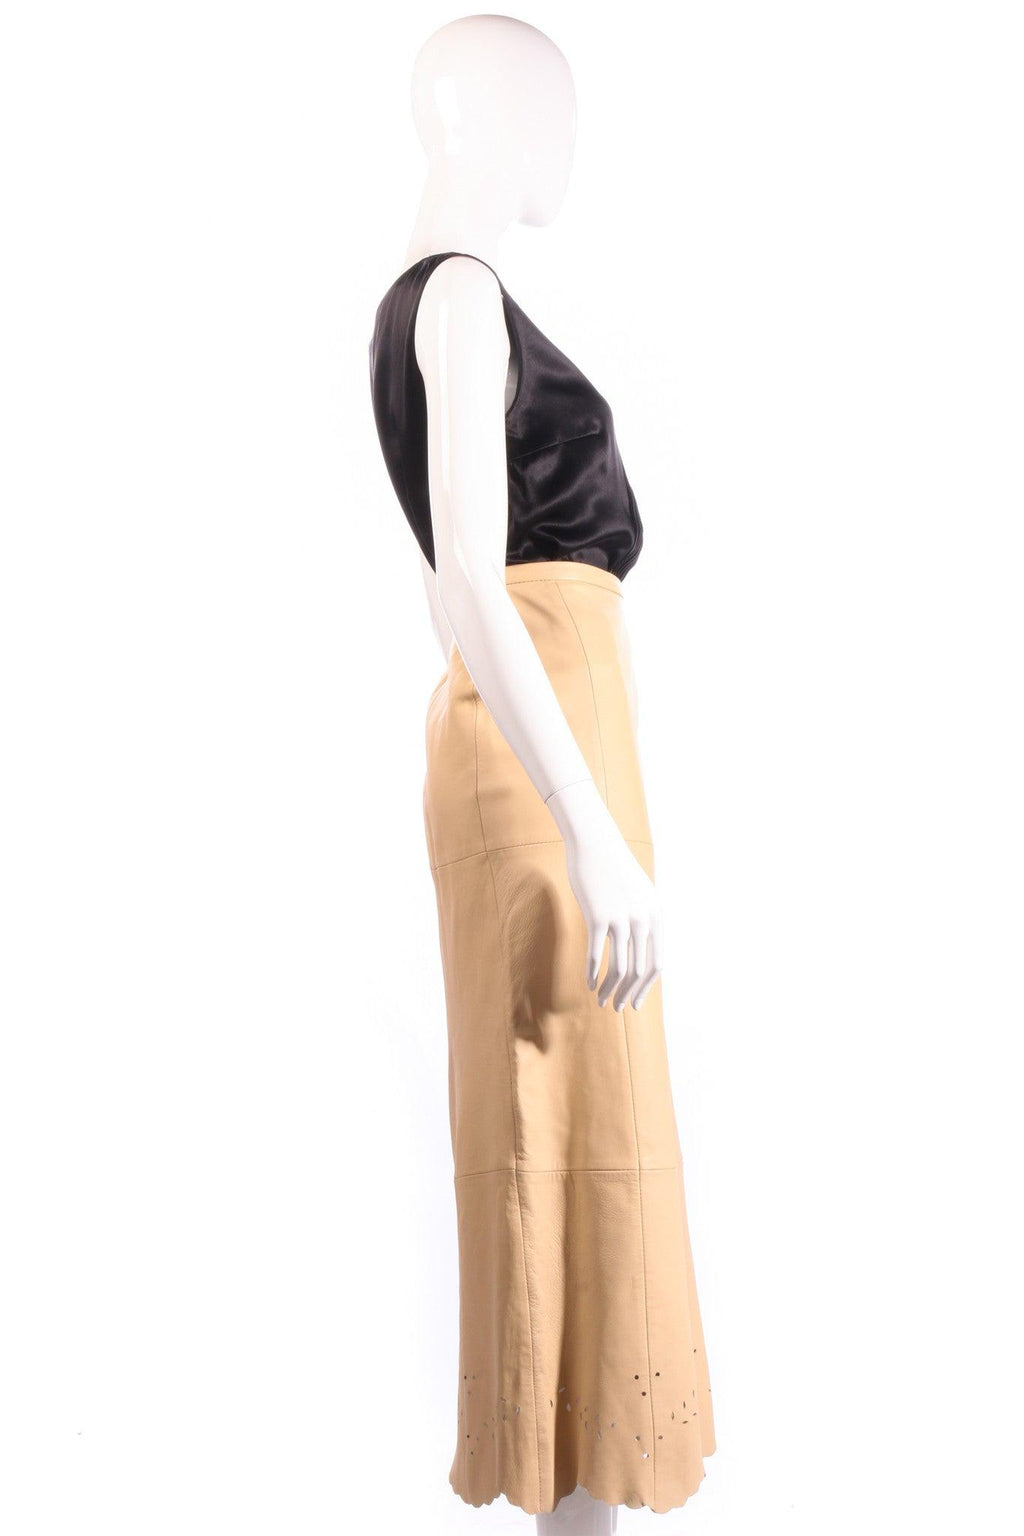 Prestige beige leather skirt with cut out detail size 12 side